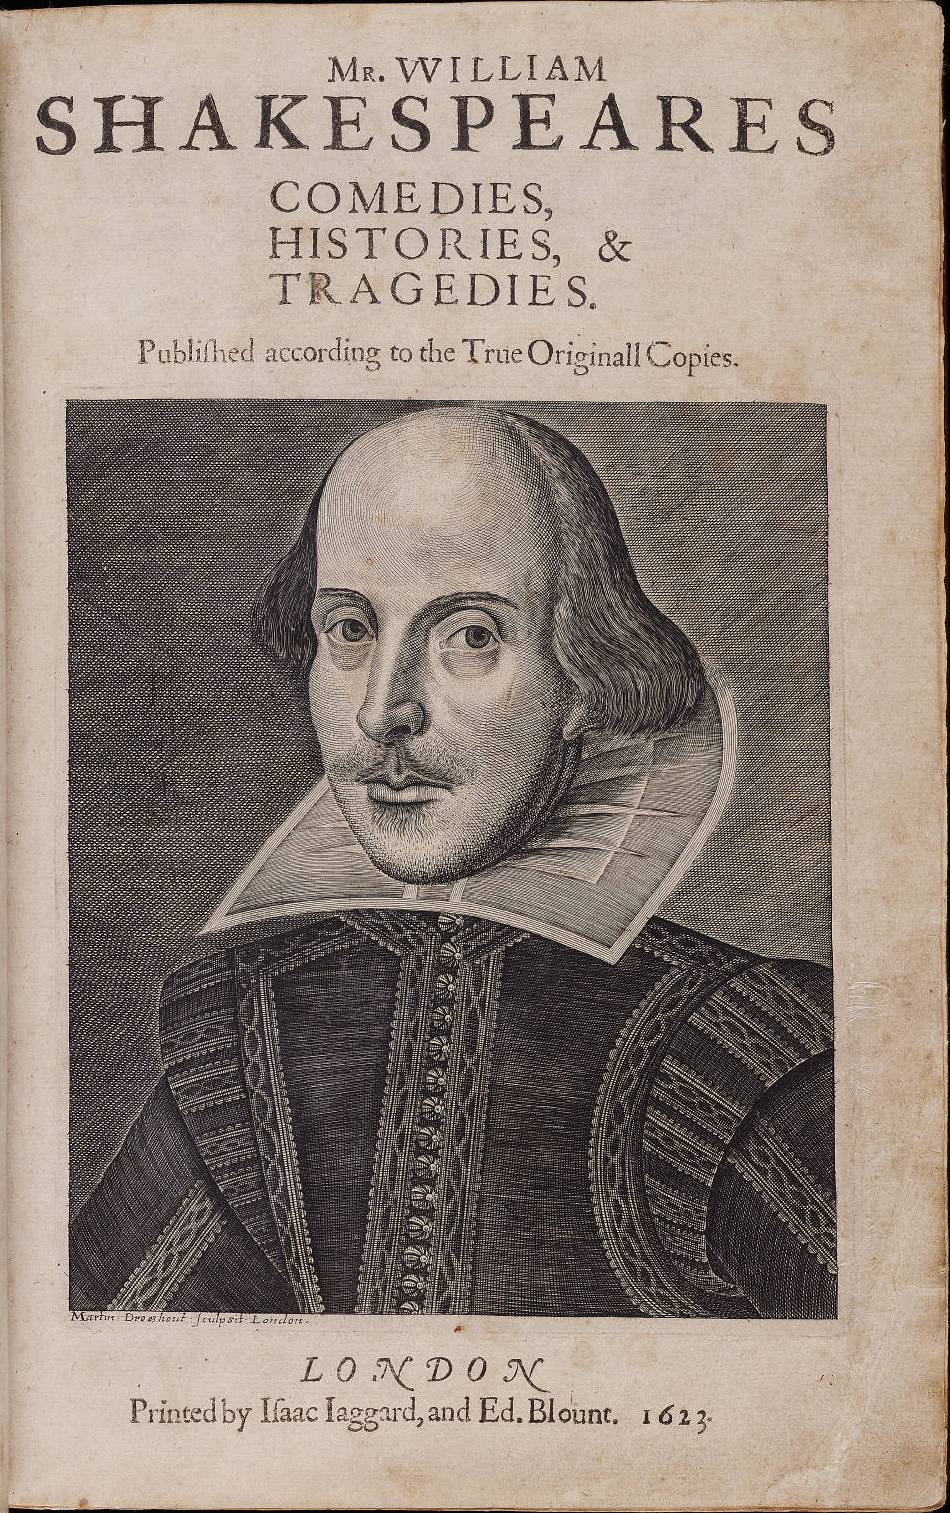 Top 5 Reasons for Teaching Shakespeare